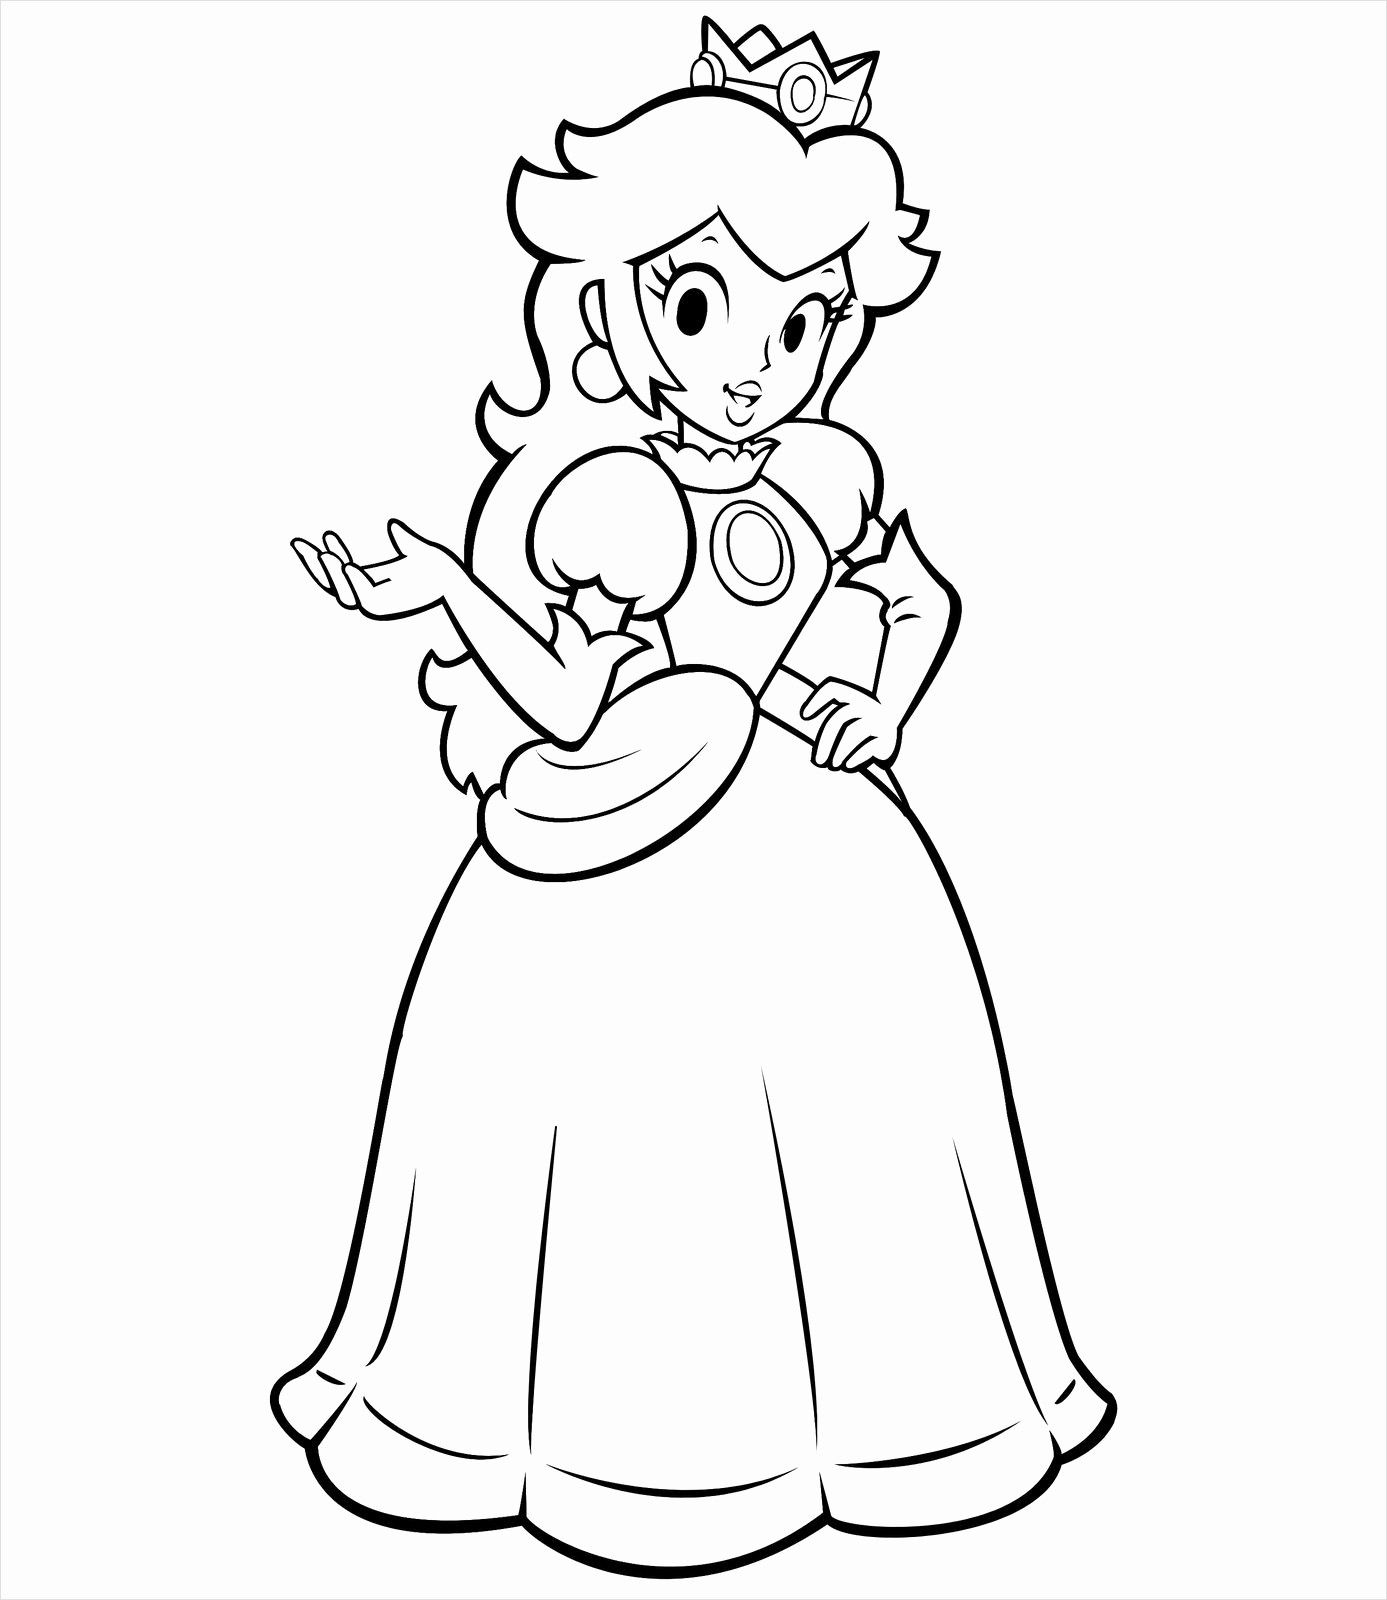 Princess Peach Coloring Pages Online From The Thousand Photos On The Internet About P Princess Coloring Pages Mario Coloring Pages Super Mario Coloring Pages